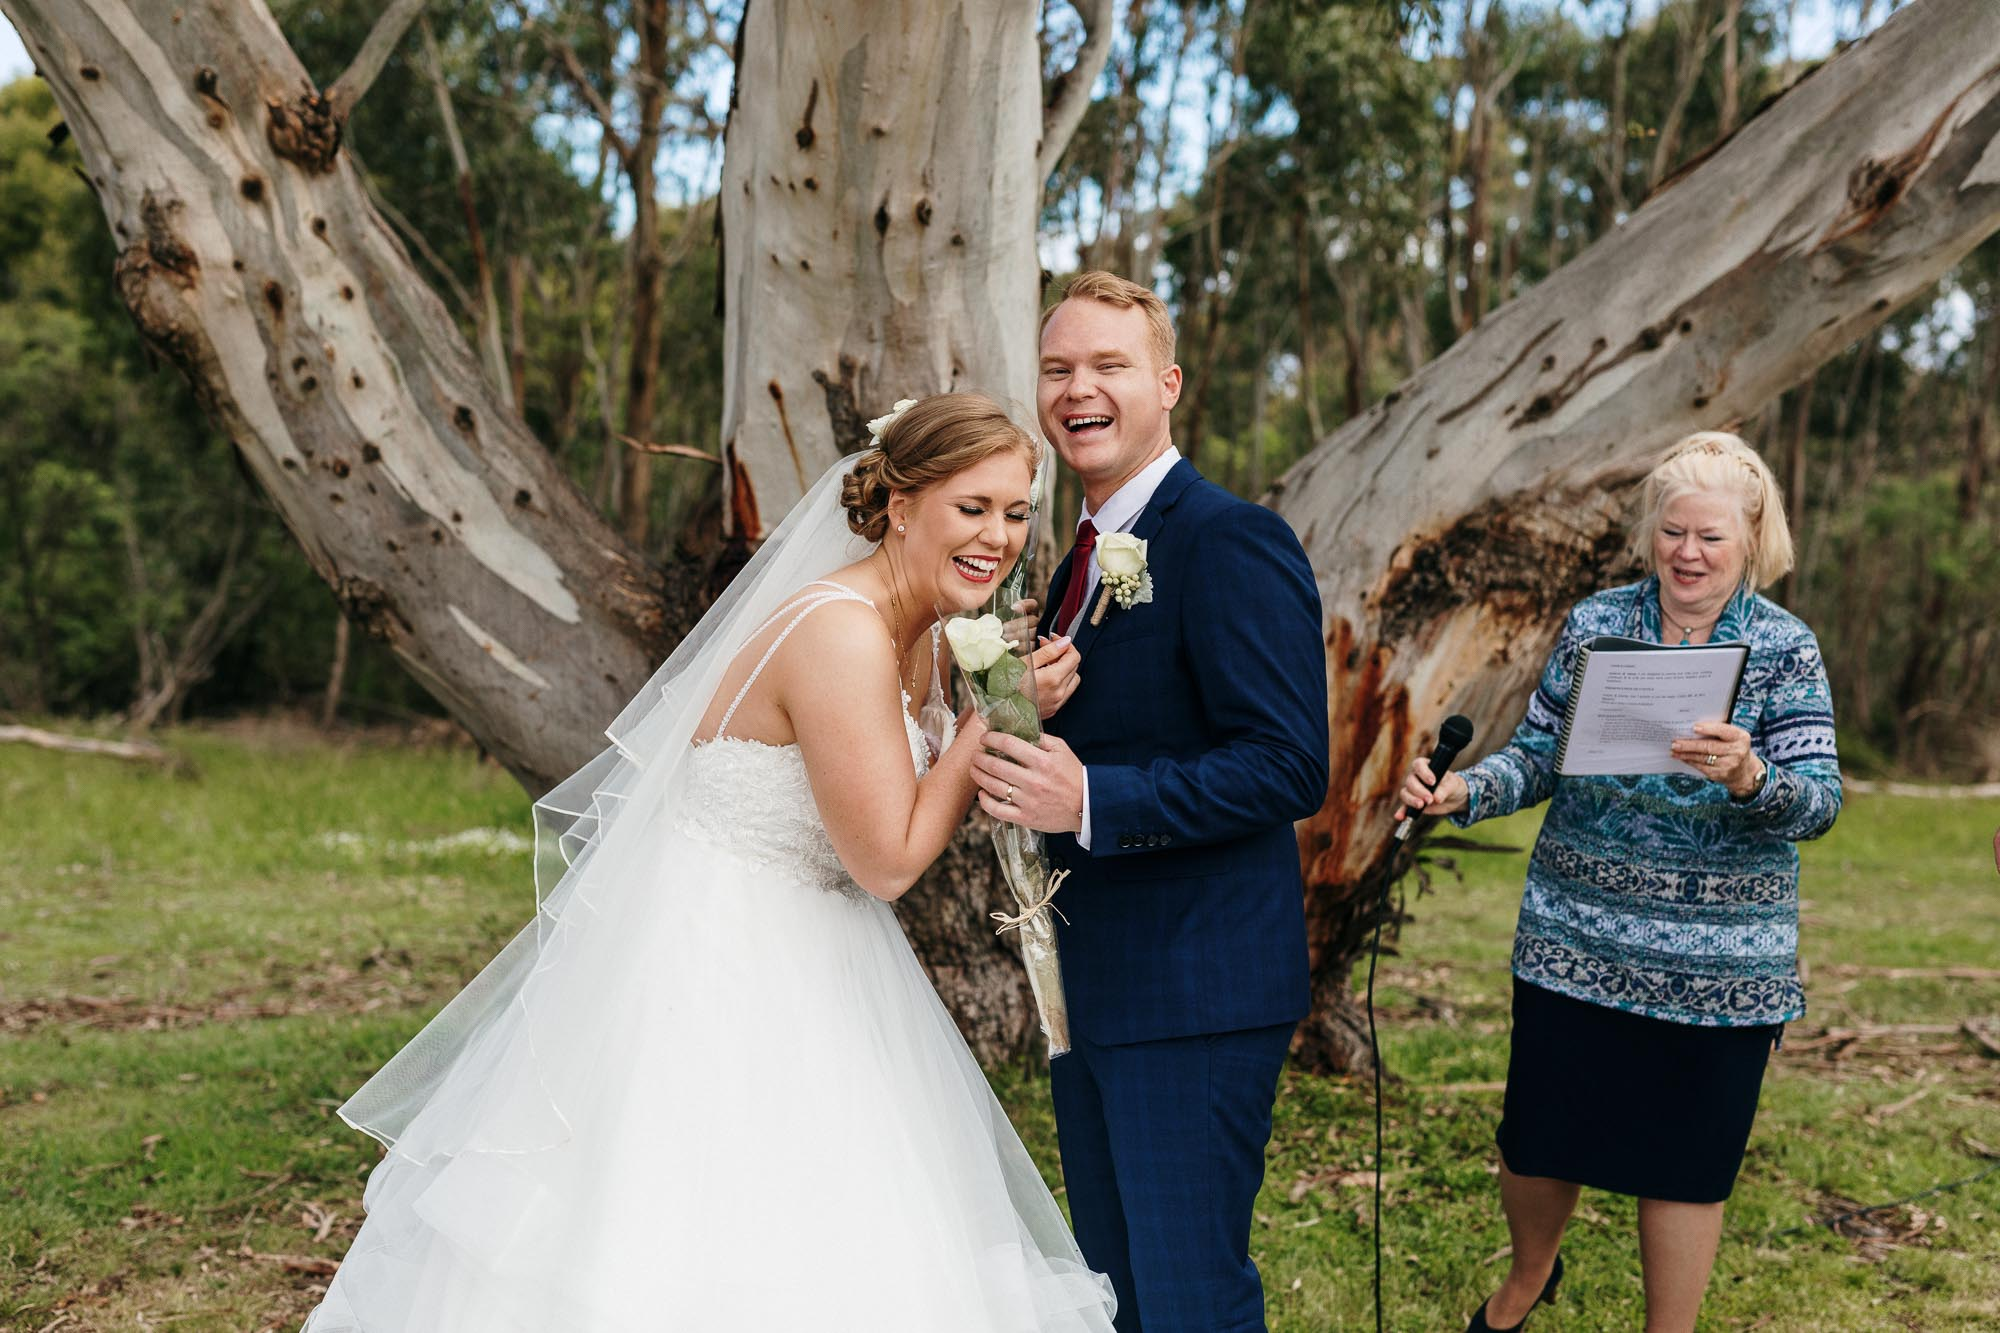 lachlan-scallion-alana-andrew-melbourne-mornington-peninsula-merricksgeneralwinestore-relaxed-candid-wedding-photography-249.jpg